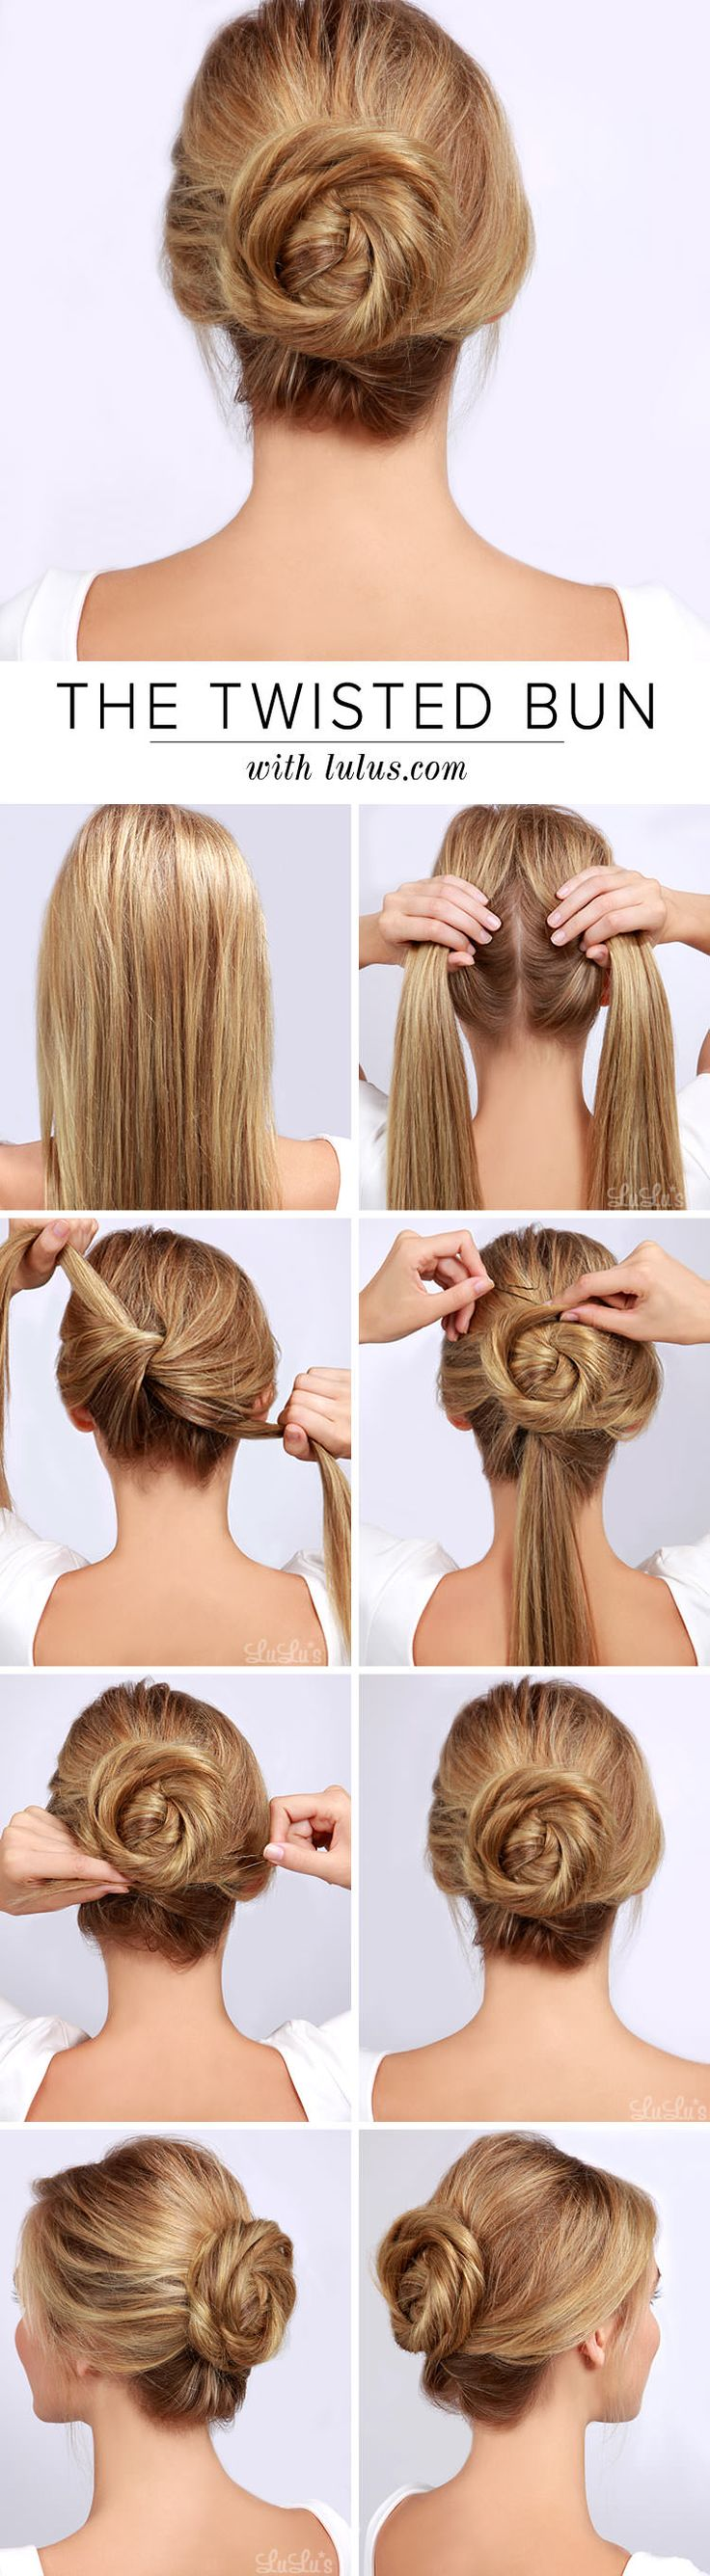 161 best Hair images on Pinterest